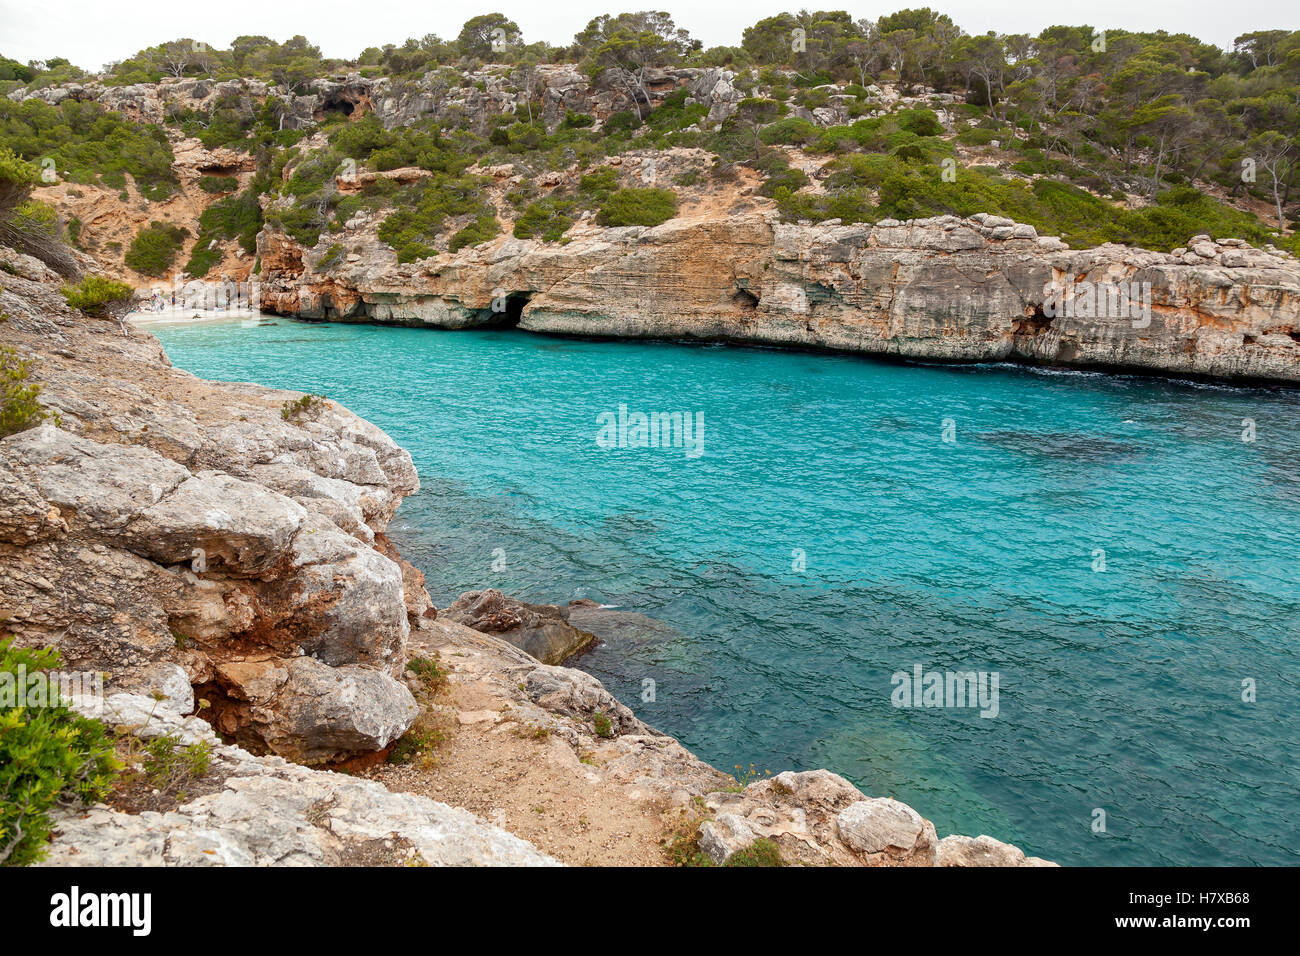 Calo des Moro. Calo des Moro - one of the many bays of Mallorca, the town Santanyí. Located in the south-east - Stock Image